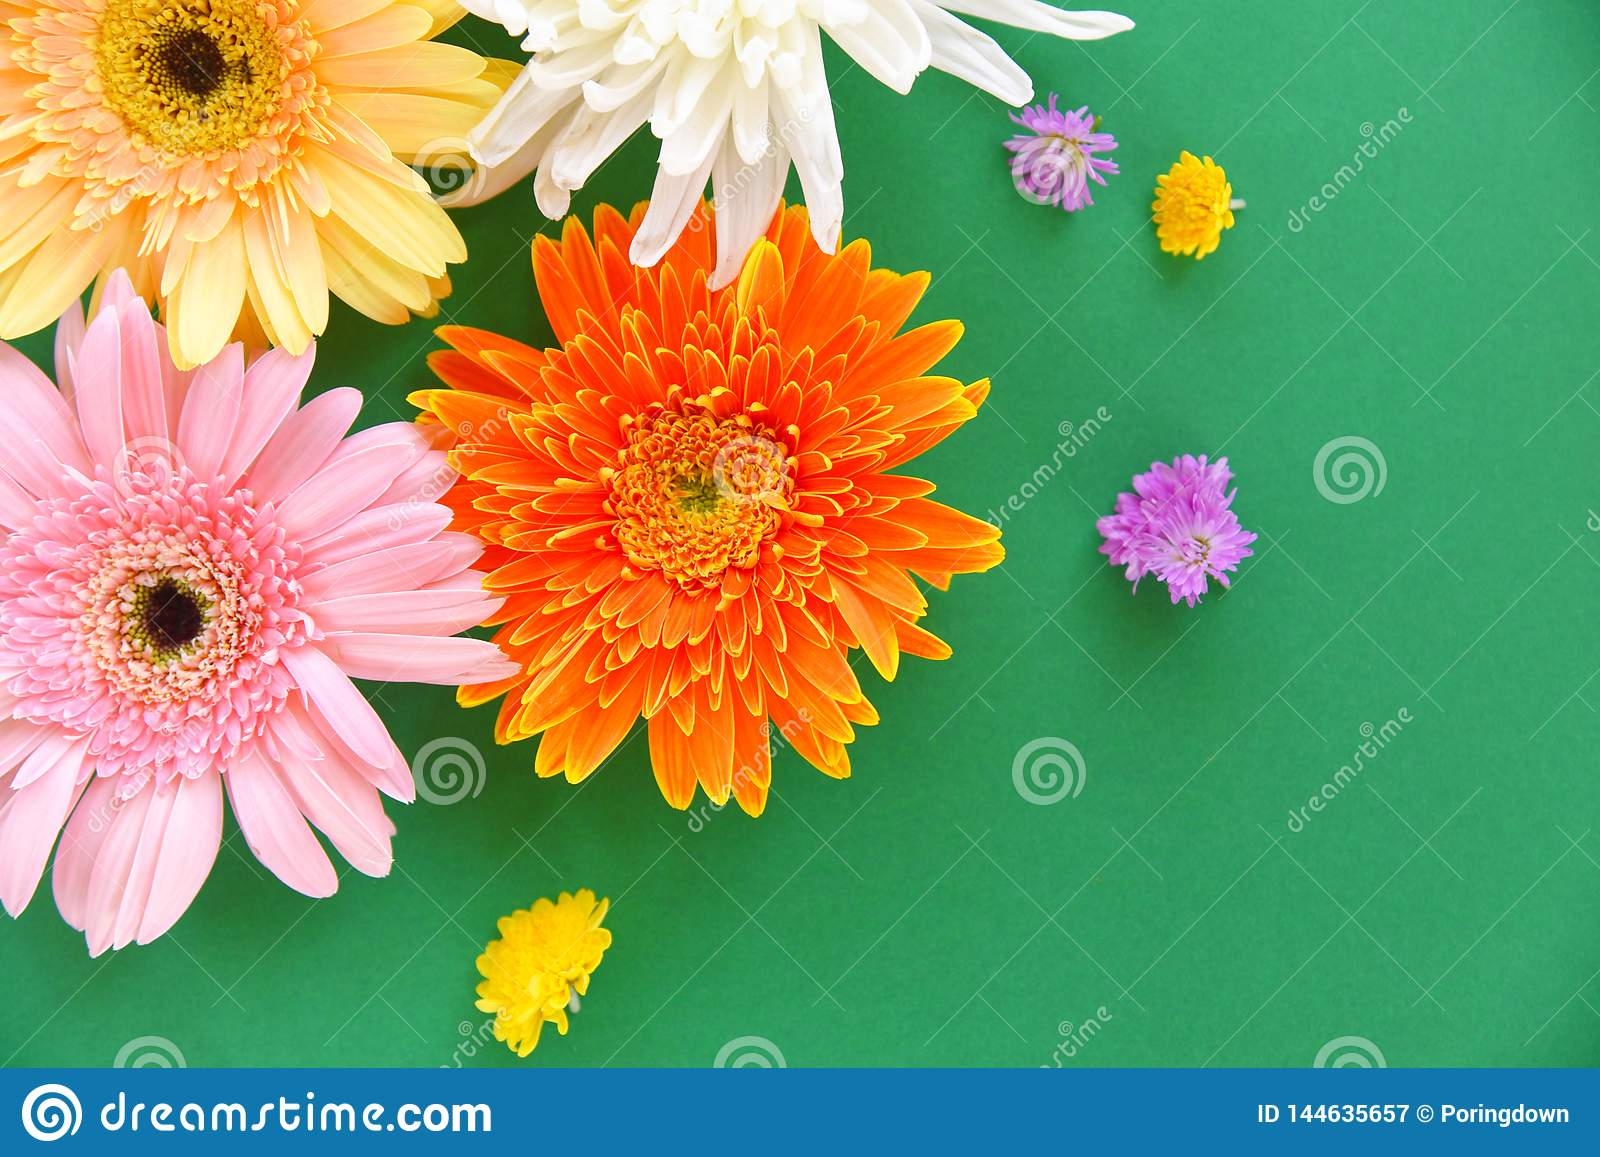 Colorful gerbera spring flowers summer beautiful blooming on green background - Flat lay Top view